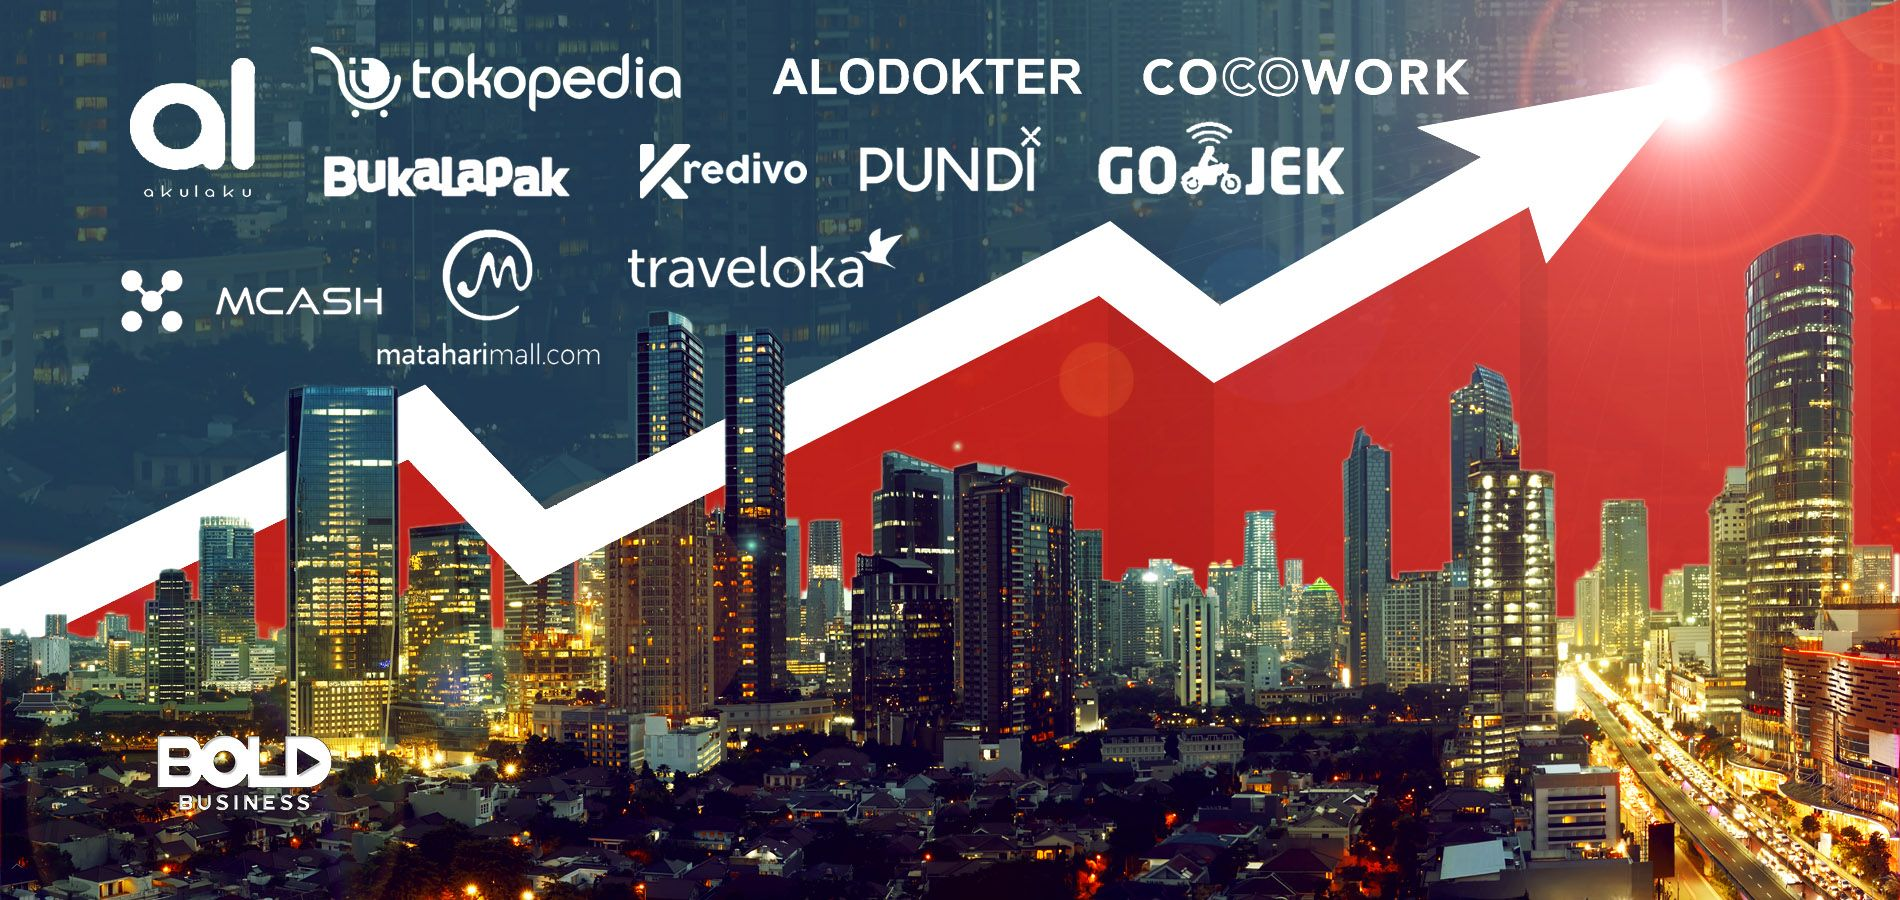 top companies in indonesia, cityscape with names of companies